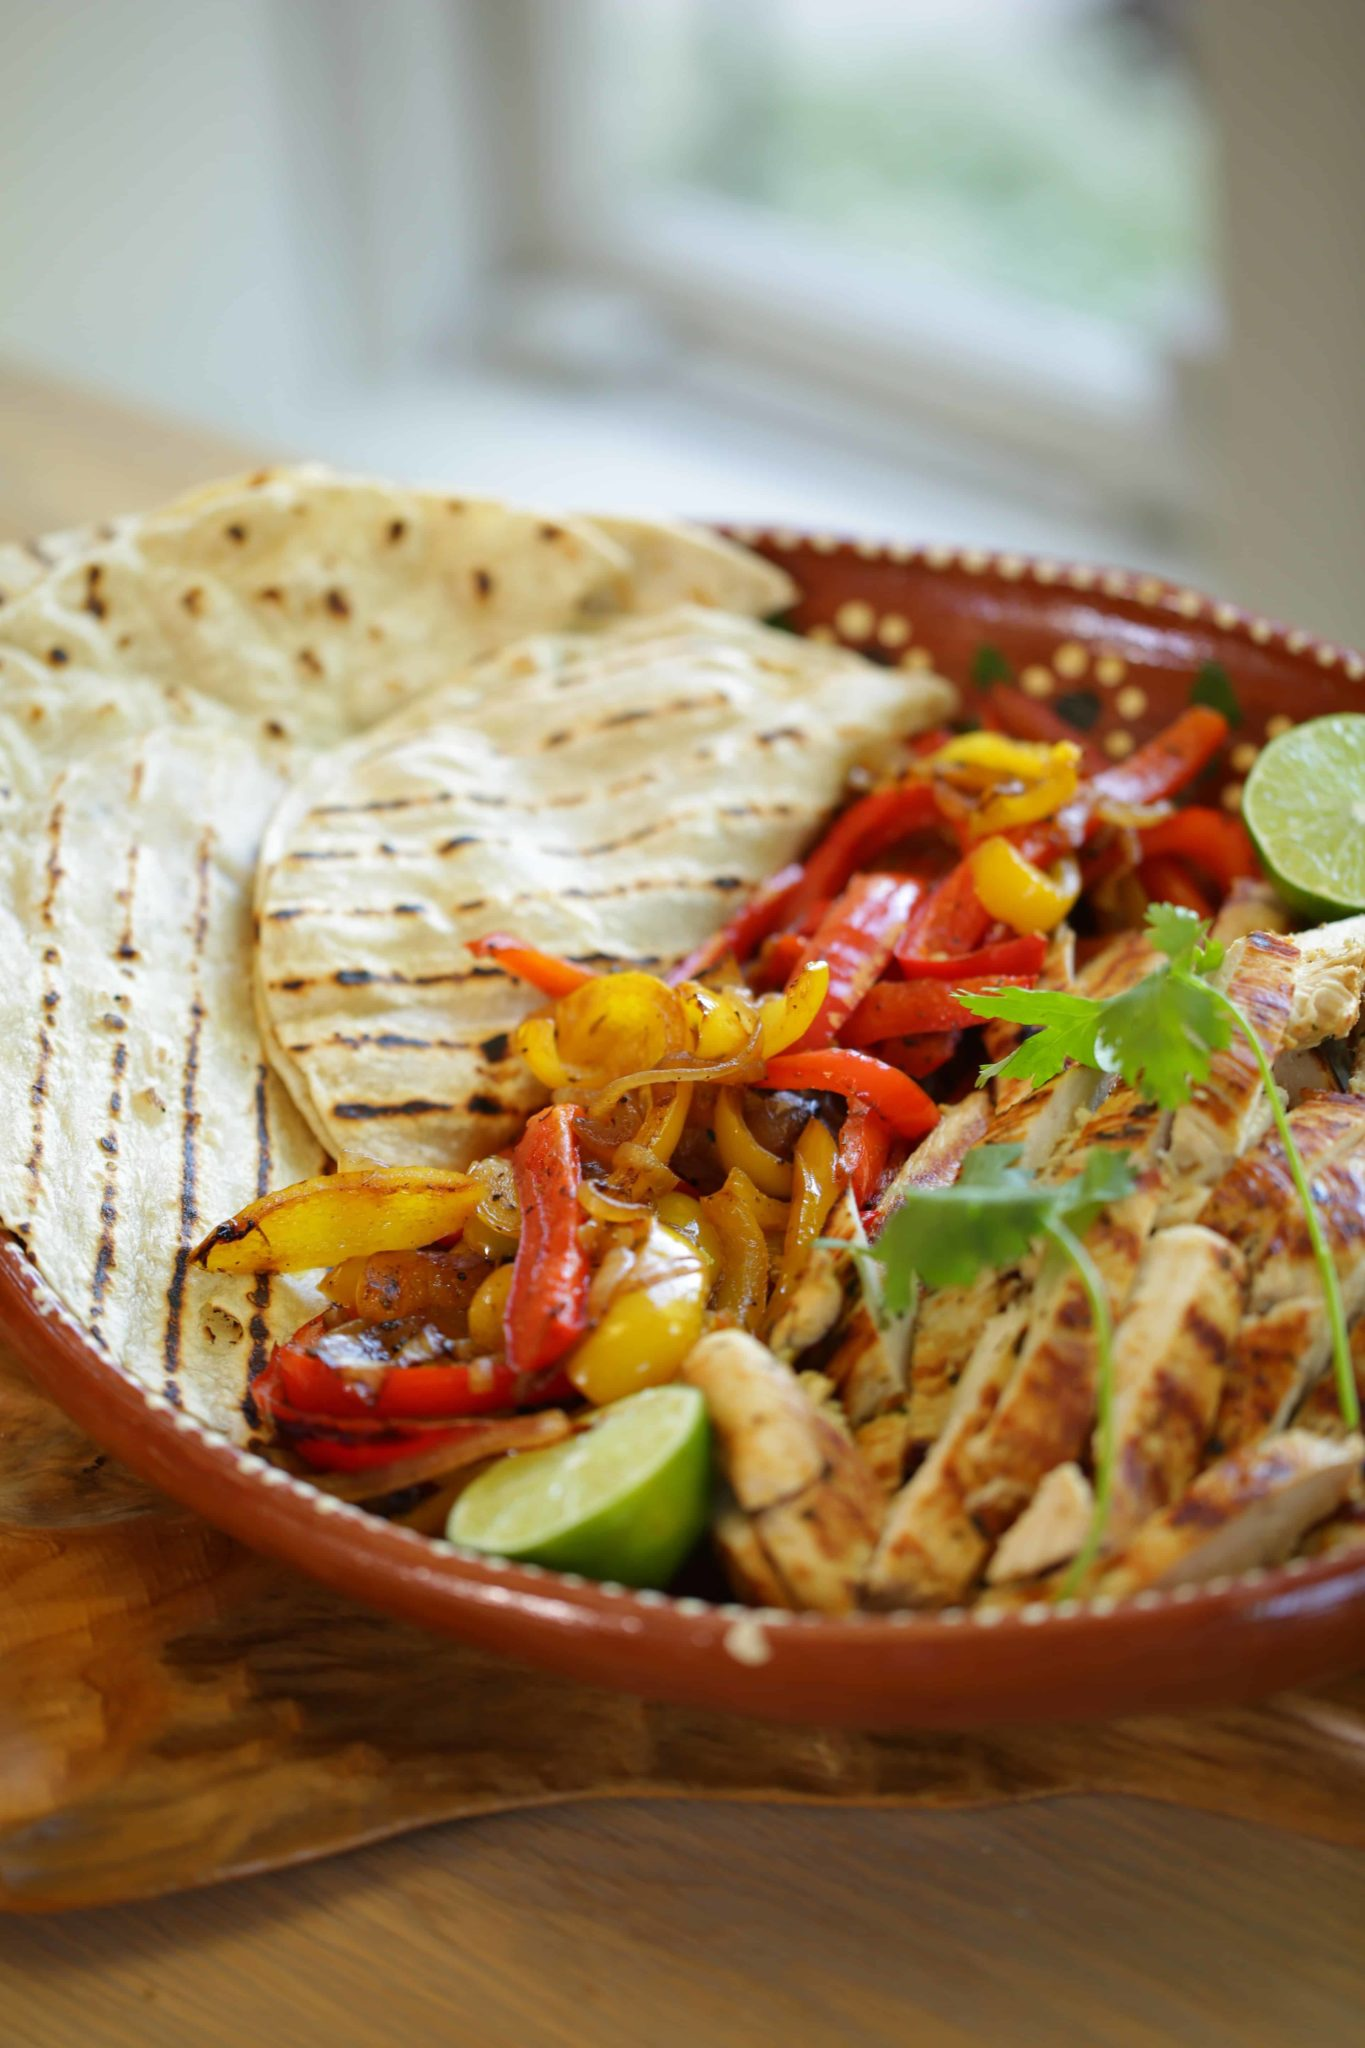 Tequila lime chicken fajita recipe entertaining with beth for Easy tequila recipes